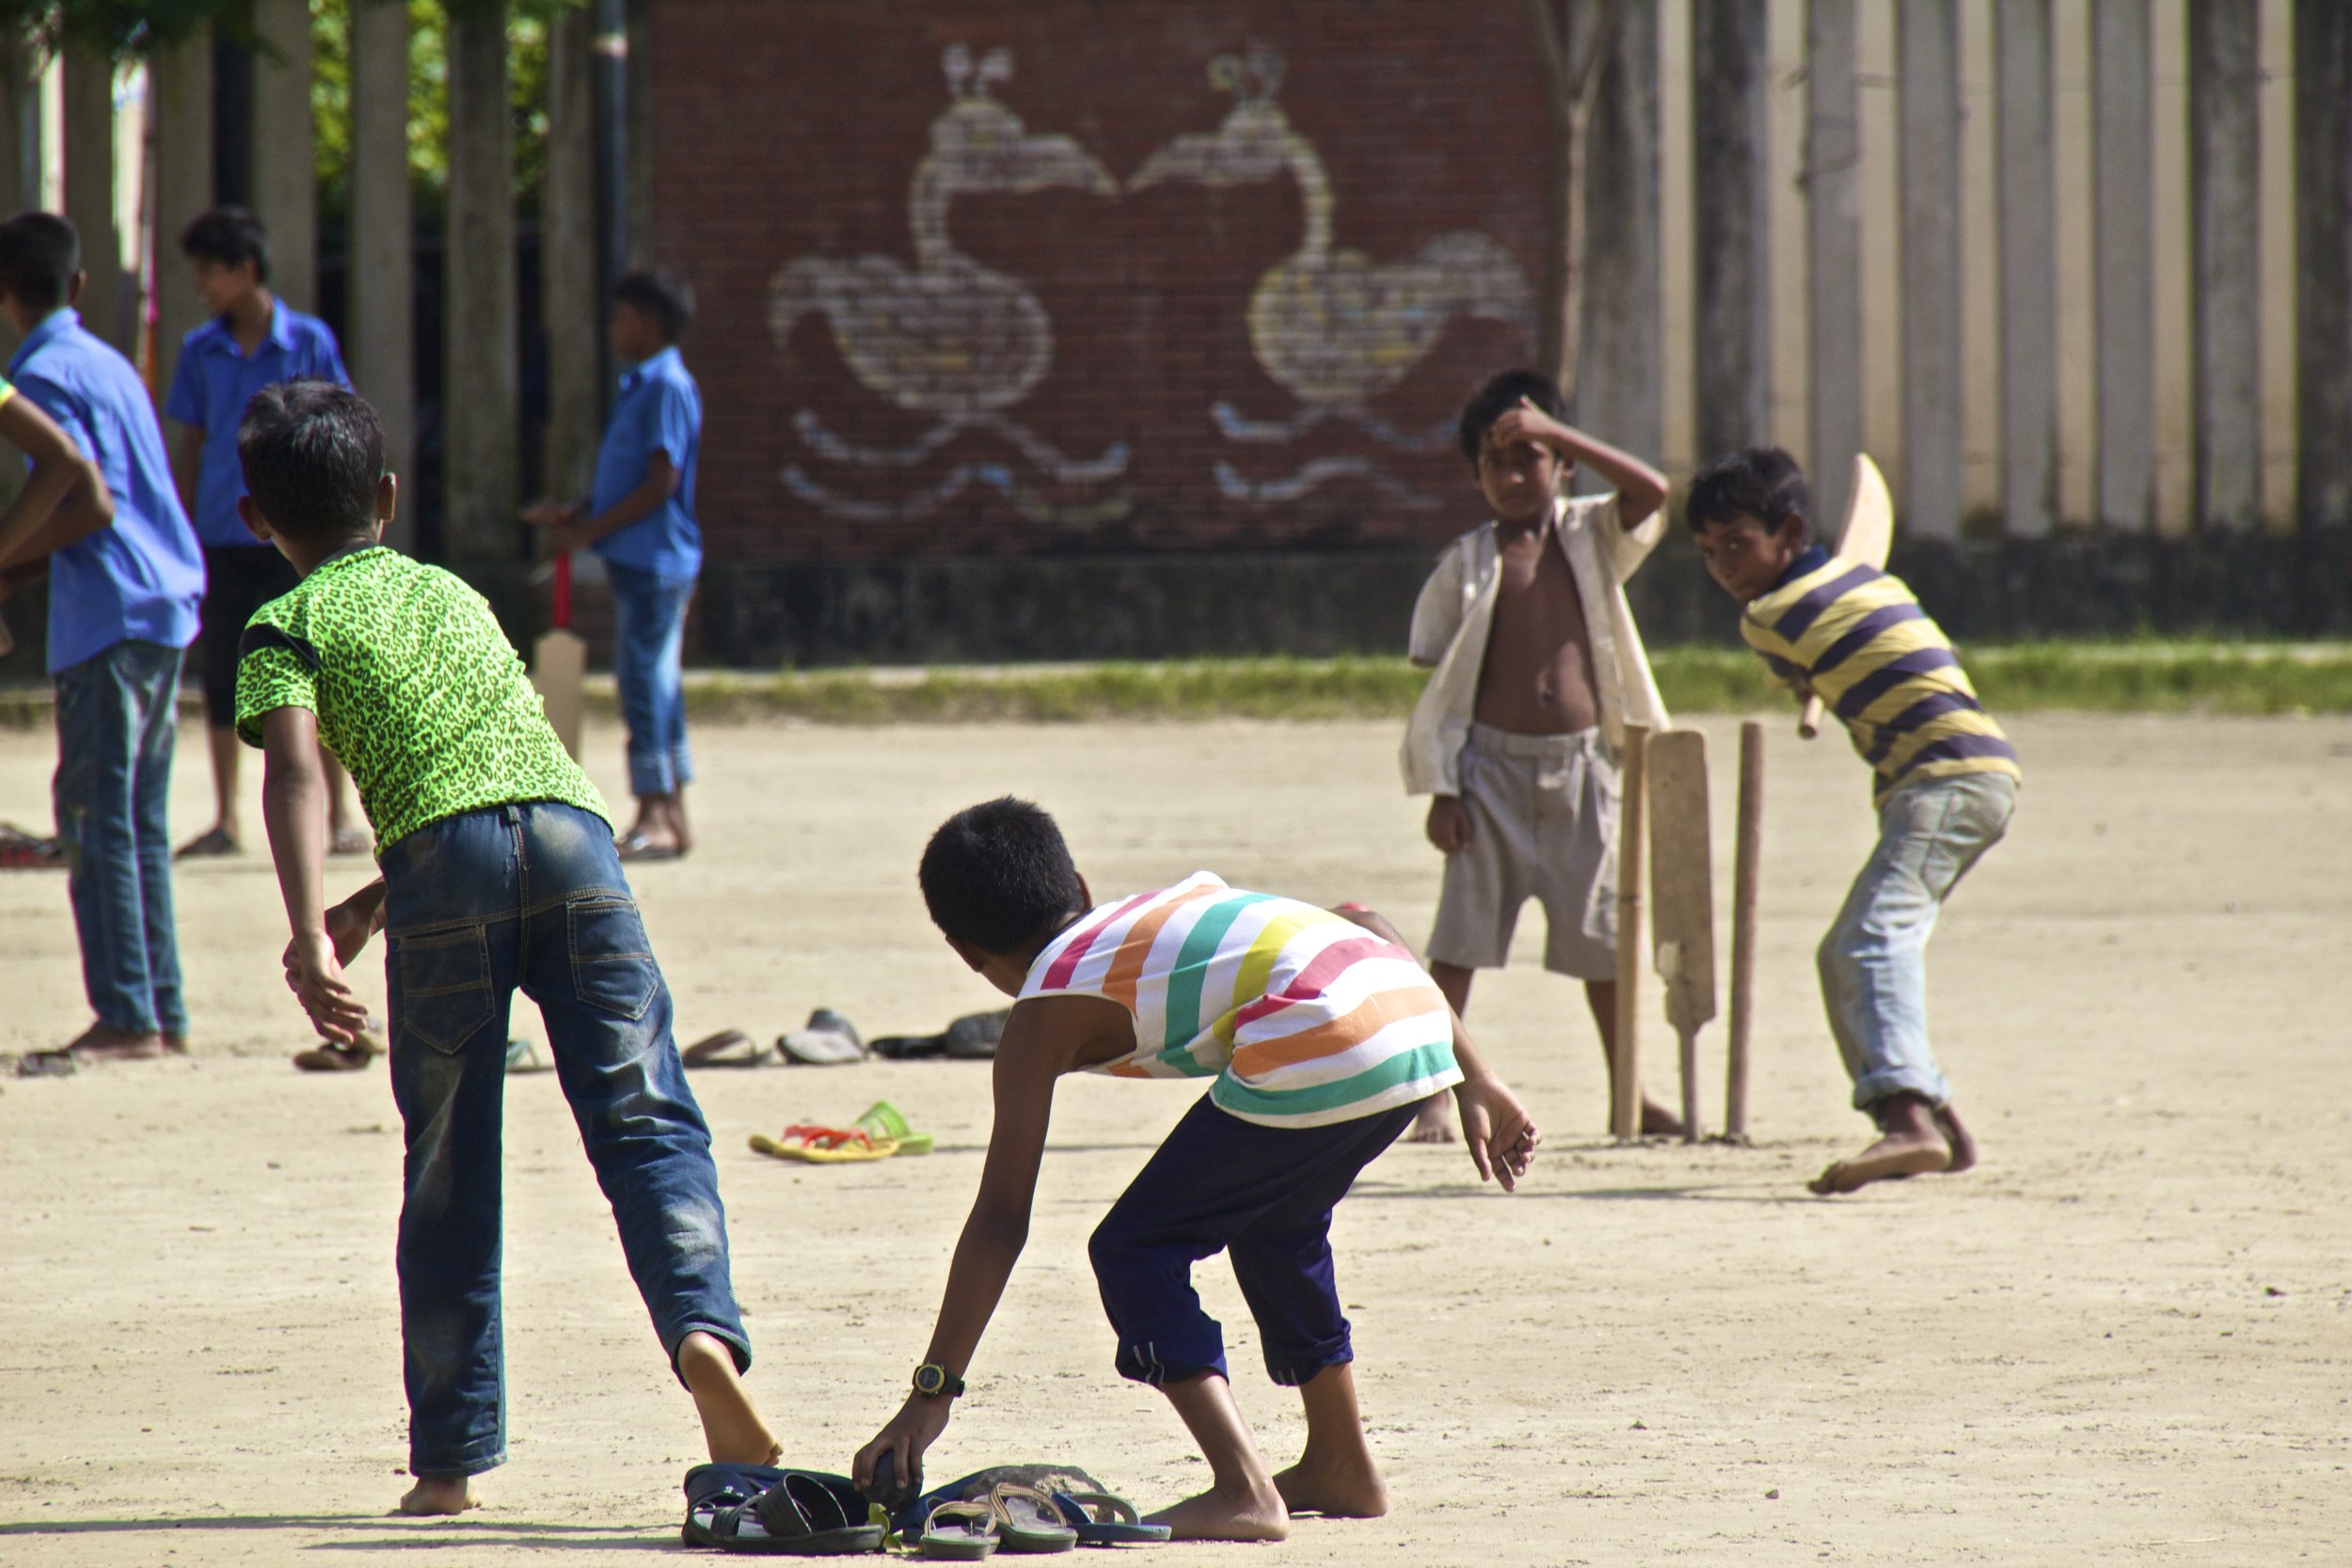 rayer bazar dhaka children playing cricket 8.jpg